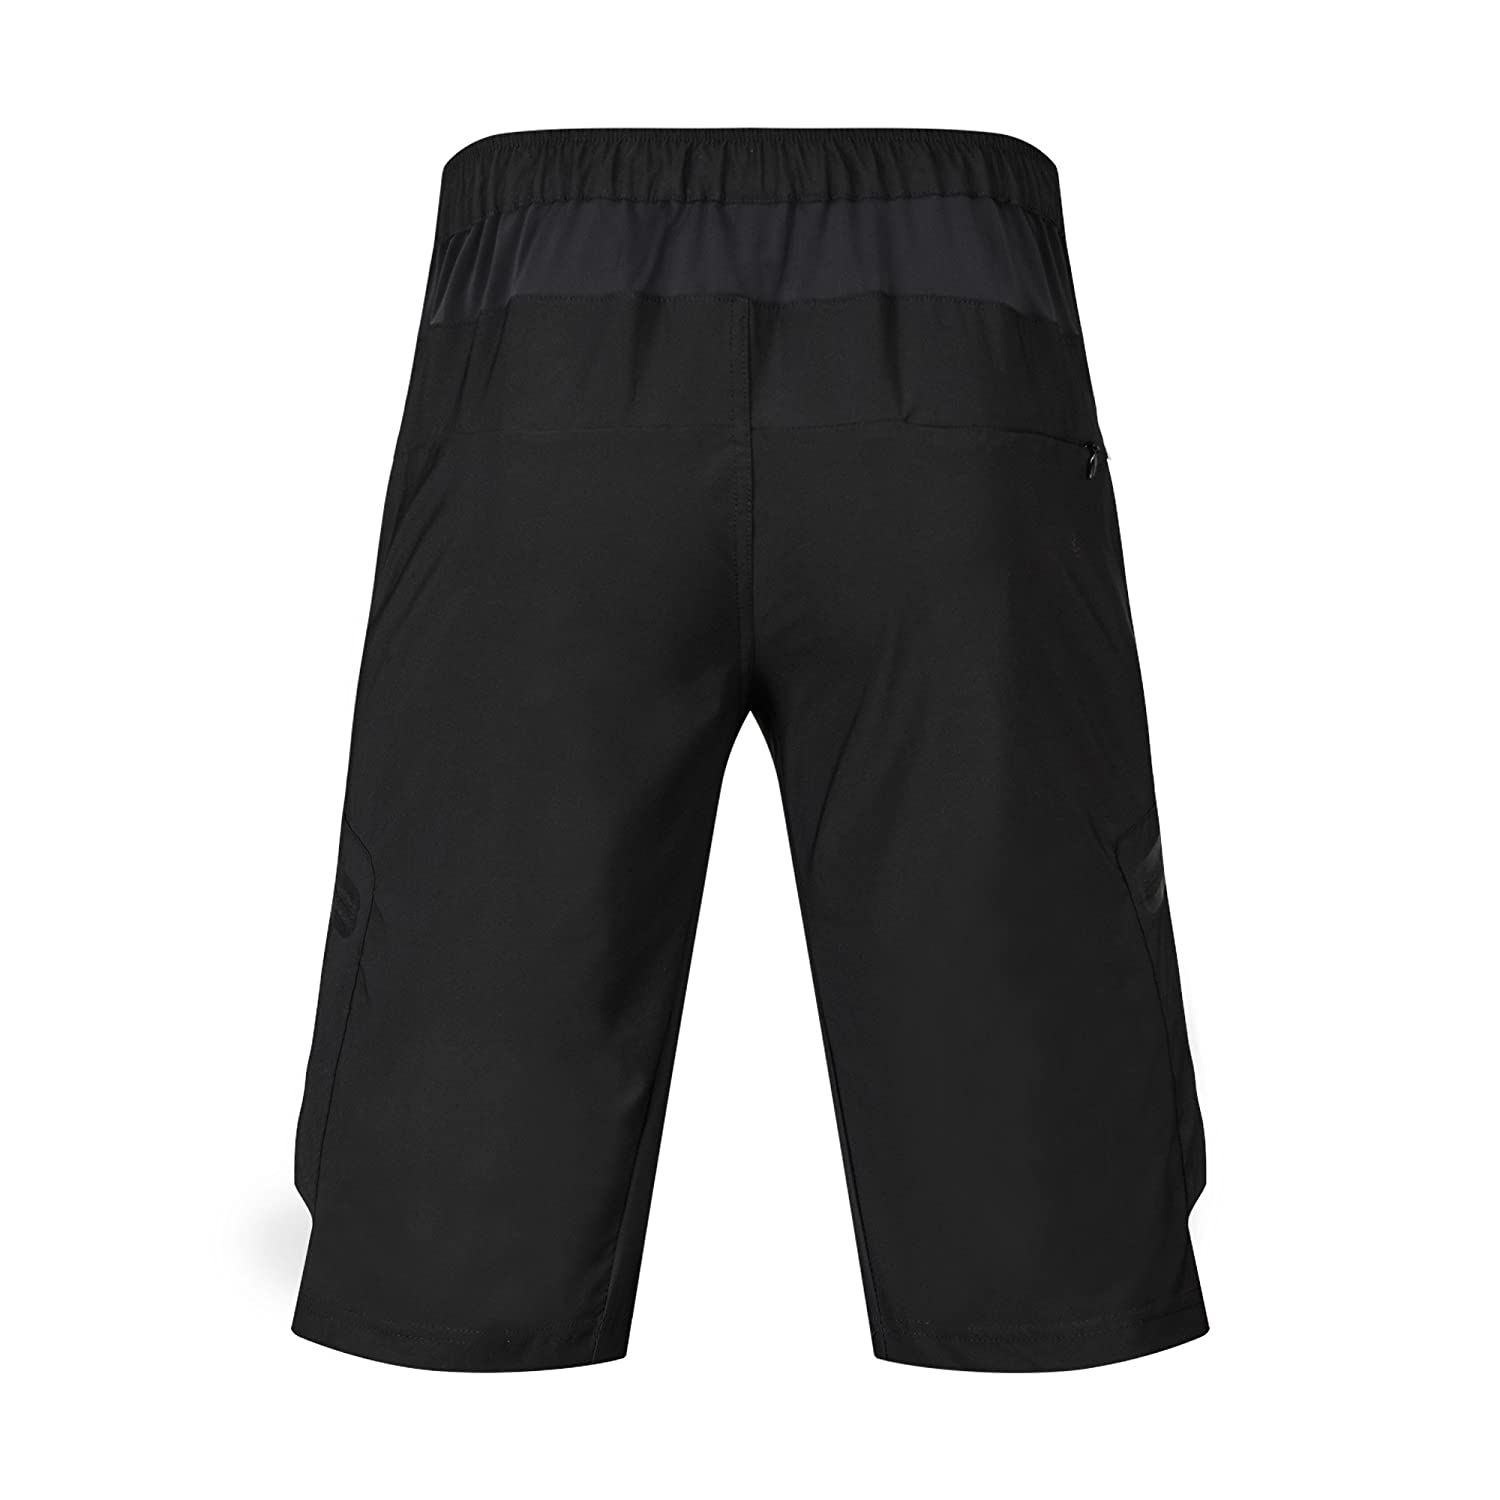 Ynport Mens Waterproof Loose Fit Breathable Shorts Mountain Bike Cycling Pants A1997